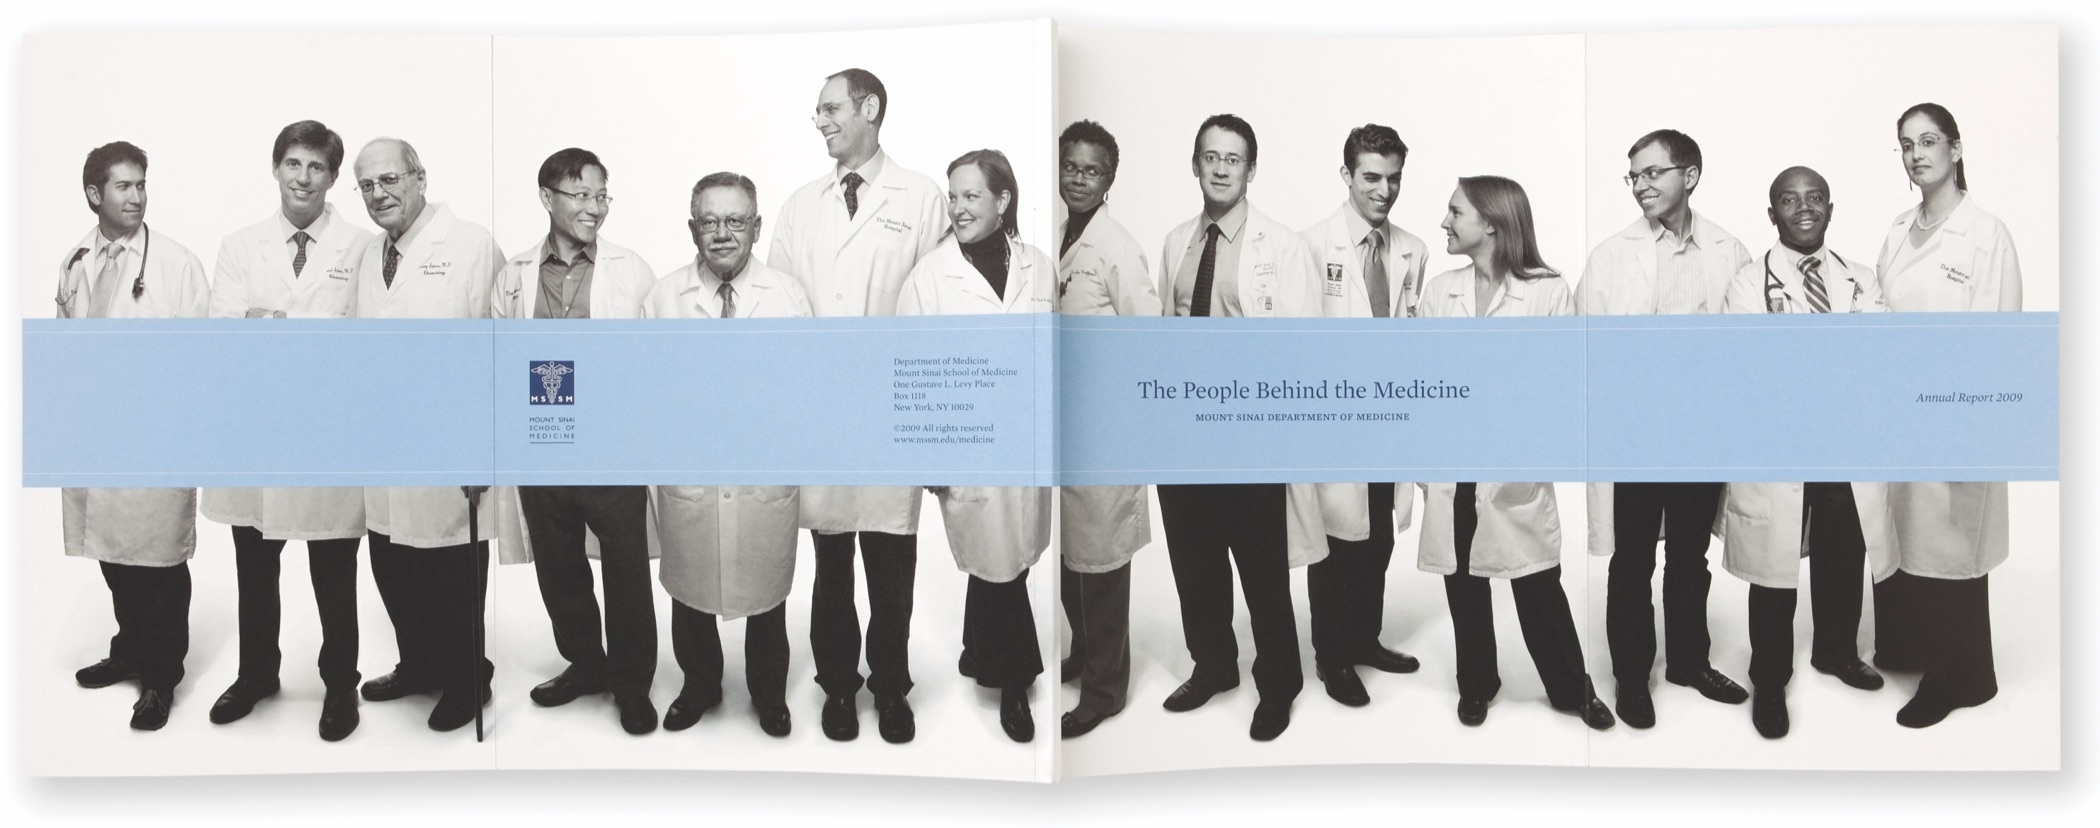 A wide black and white photo of 14 faculty members in lab coats spread across two pages of the 2009 Mount Sinai Department of Medicine Annual Report.